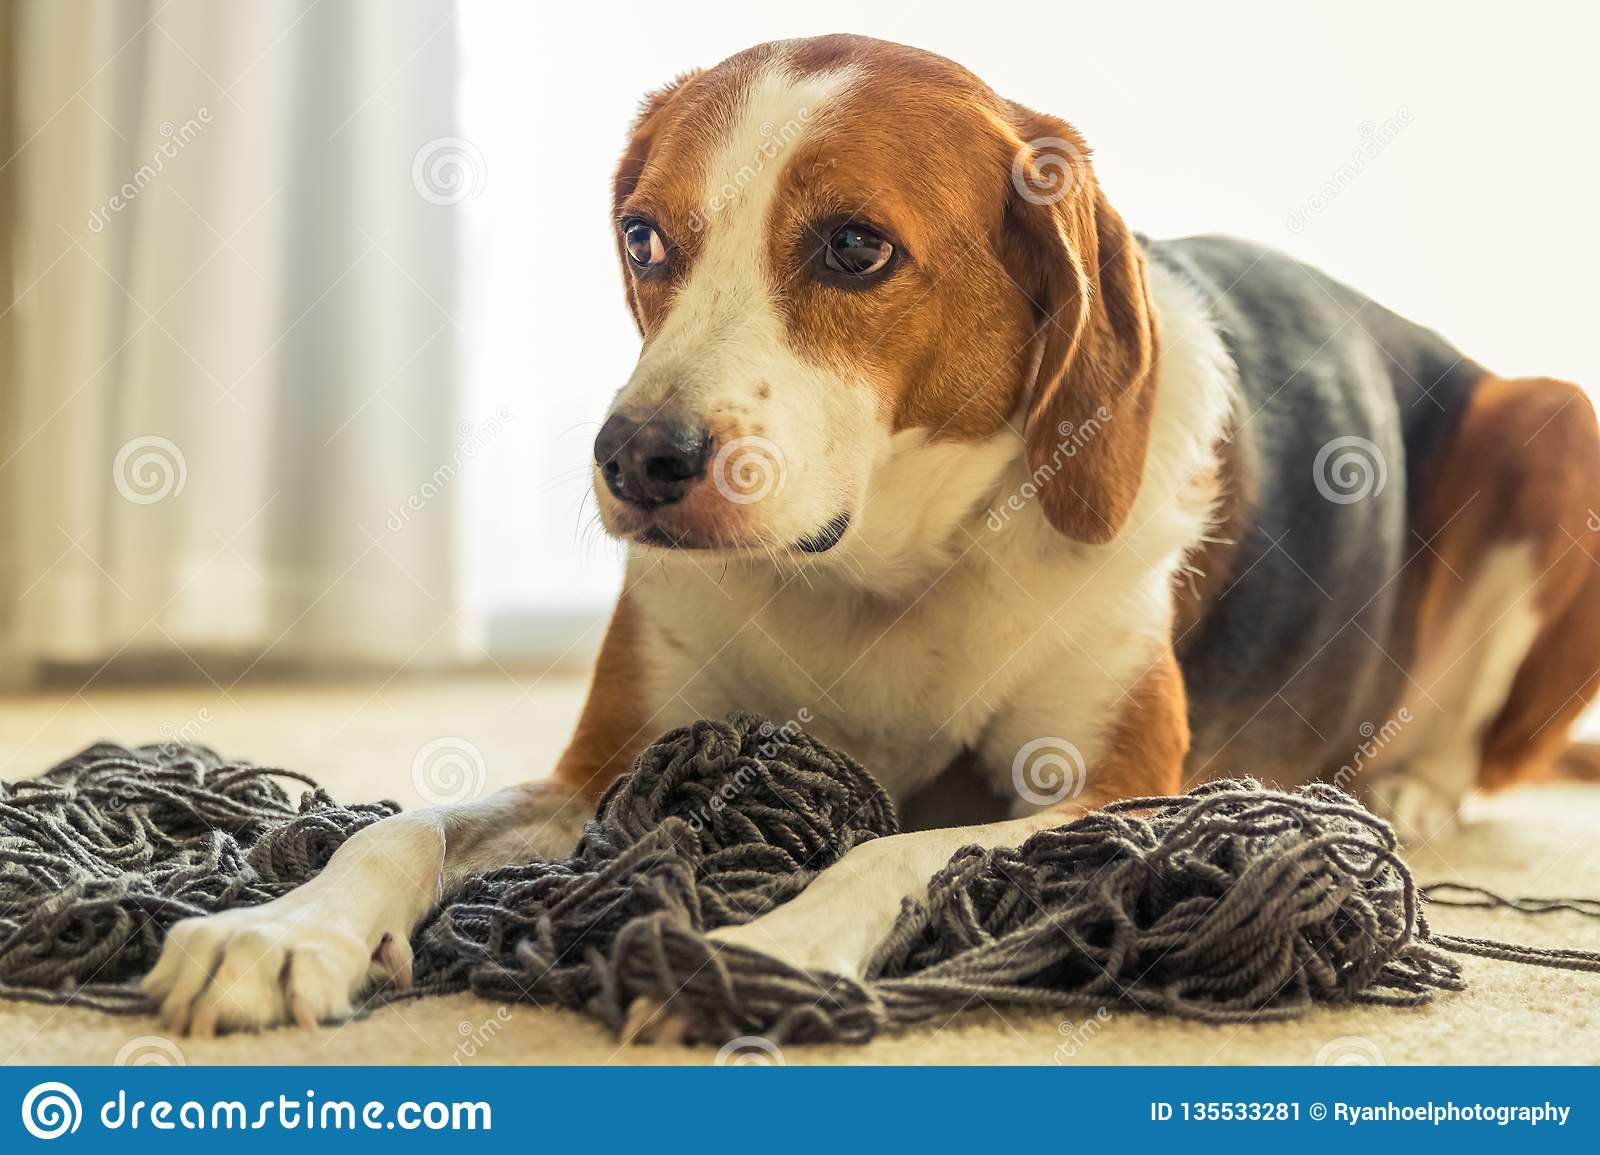 A Beagle Dog Laying Down In A Mess Of Tangled Yarn Beagle Dog Laying Down In A Mess Of Tangled Yarn Stock Image Image Of Colorful Hound 135533281